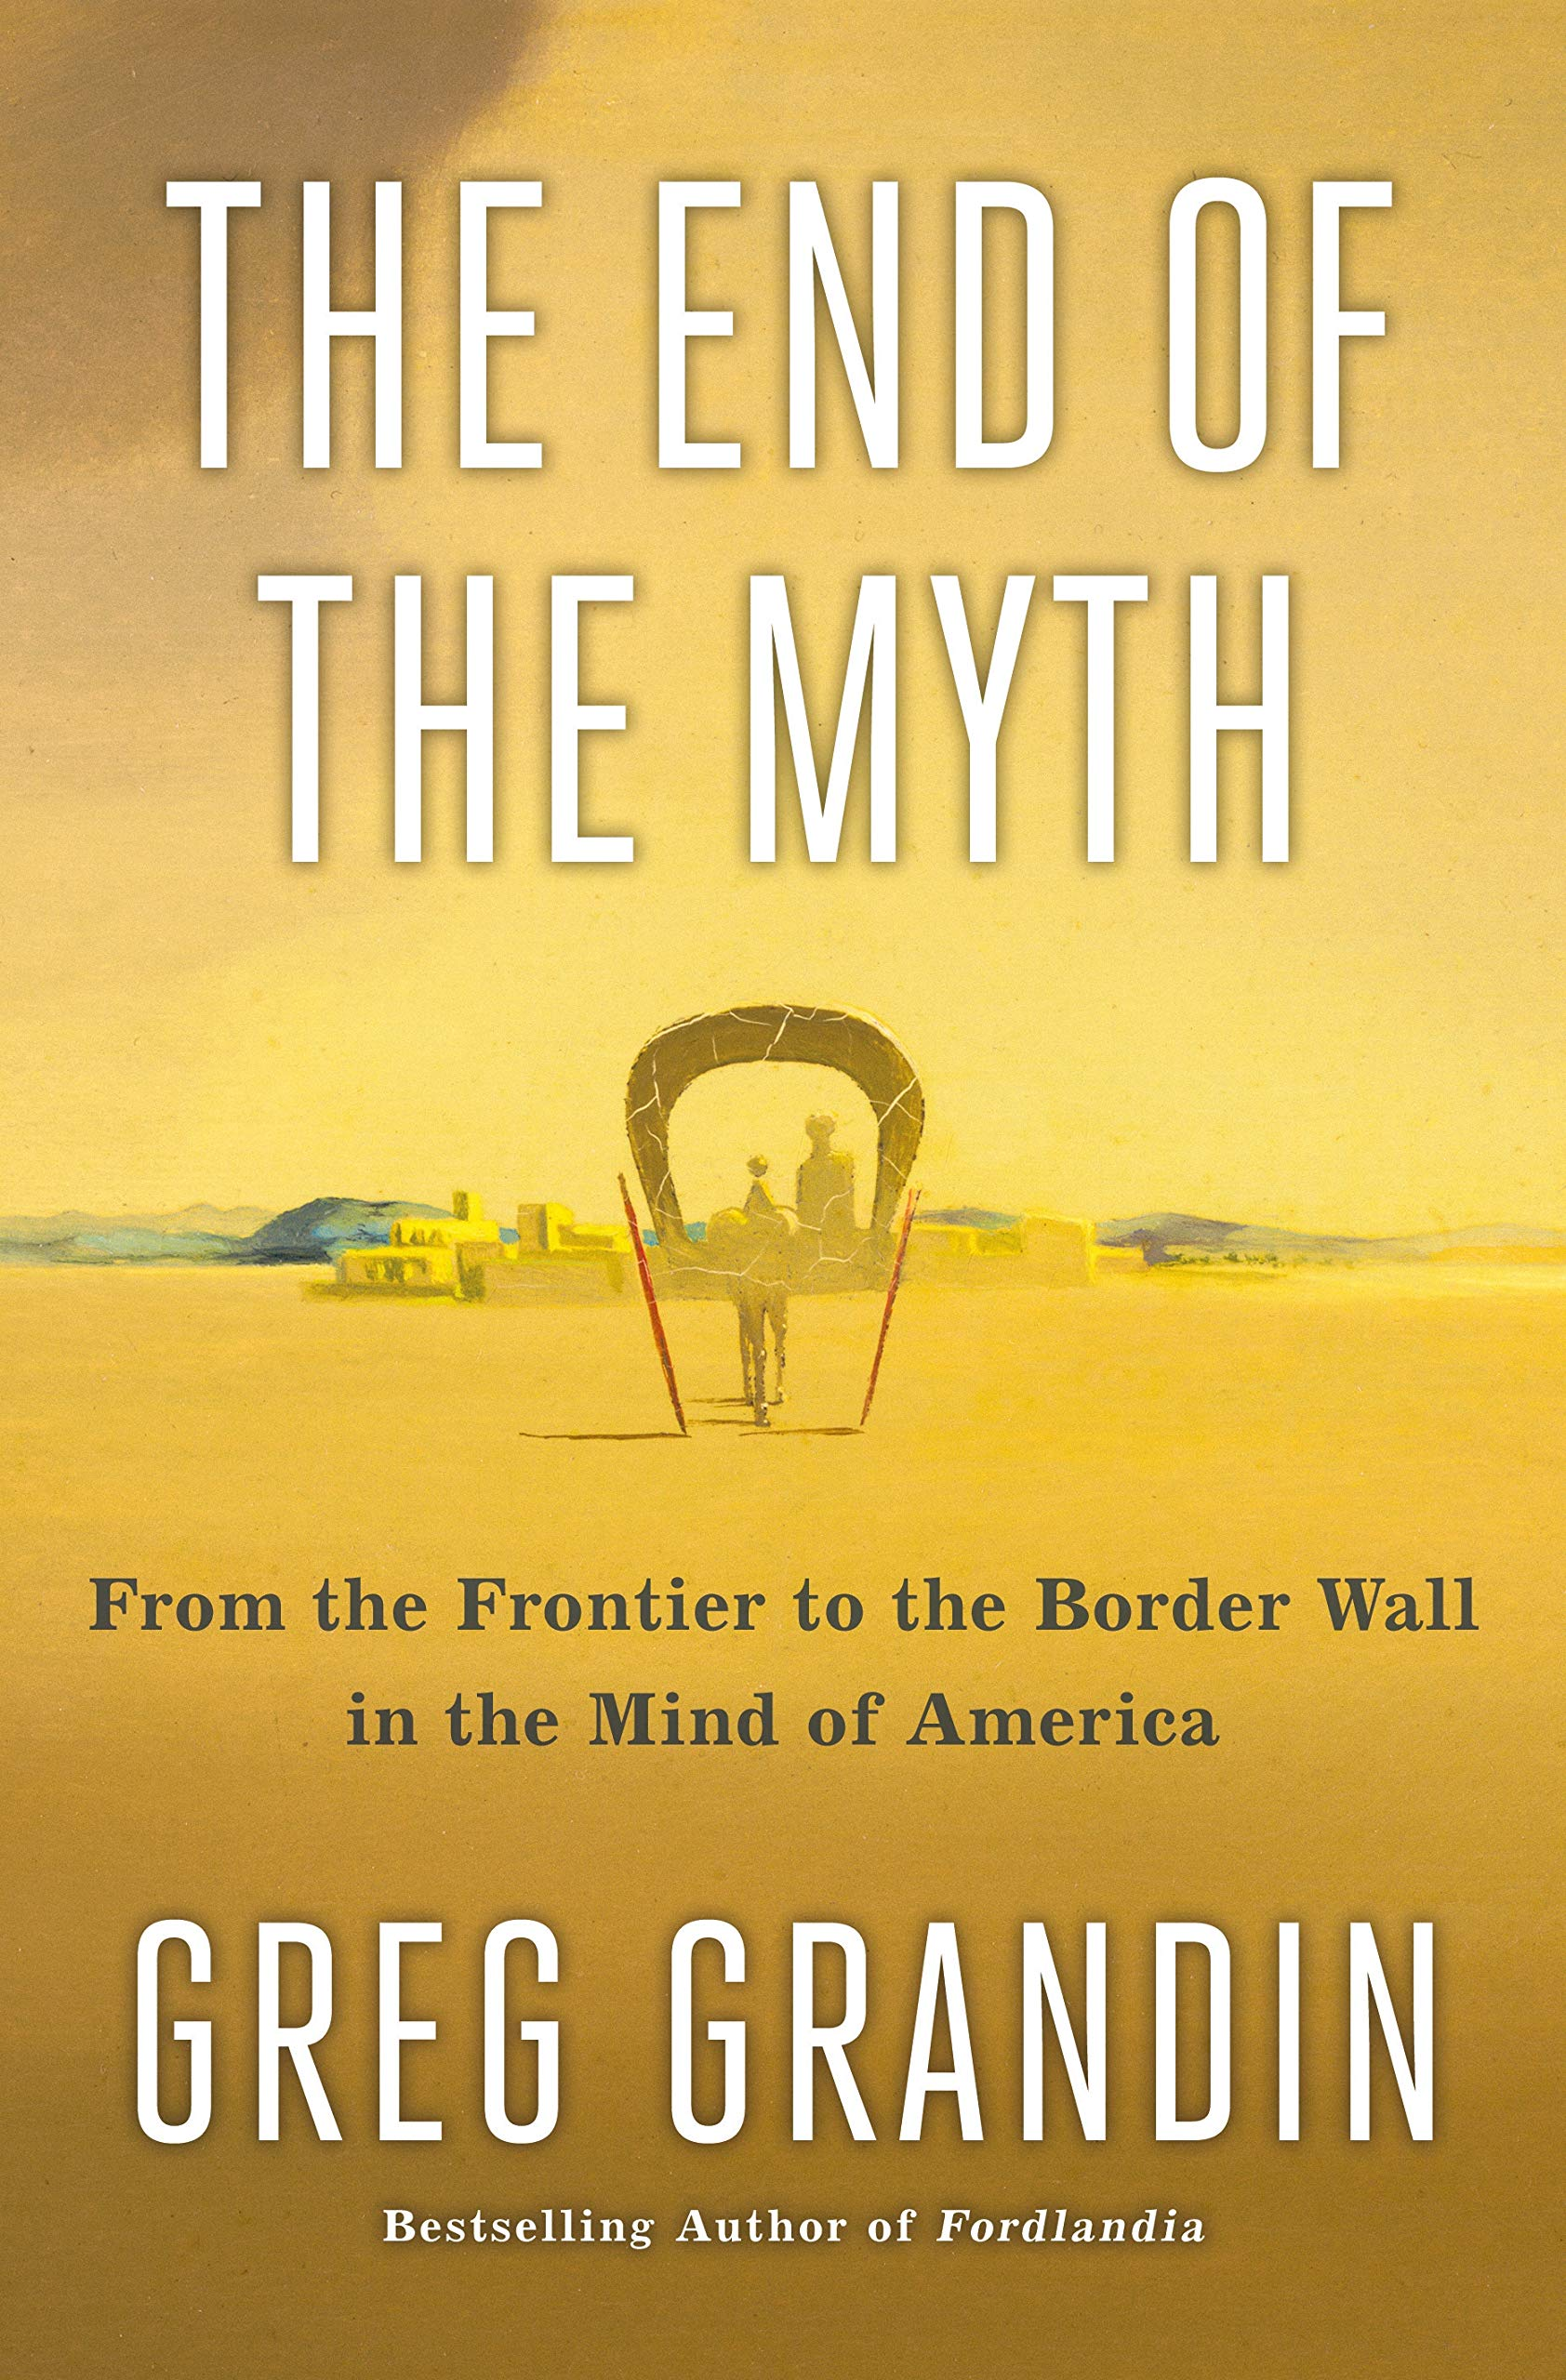 The cover of The End of the Myth: From the Frontier to the Border Wall in the Mind of America